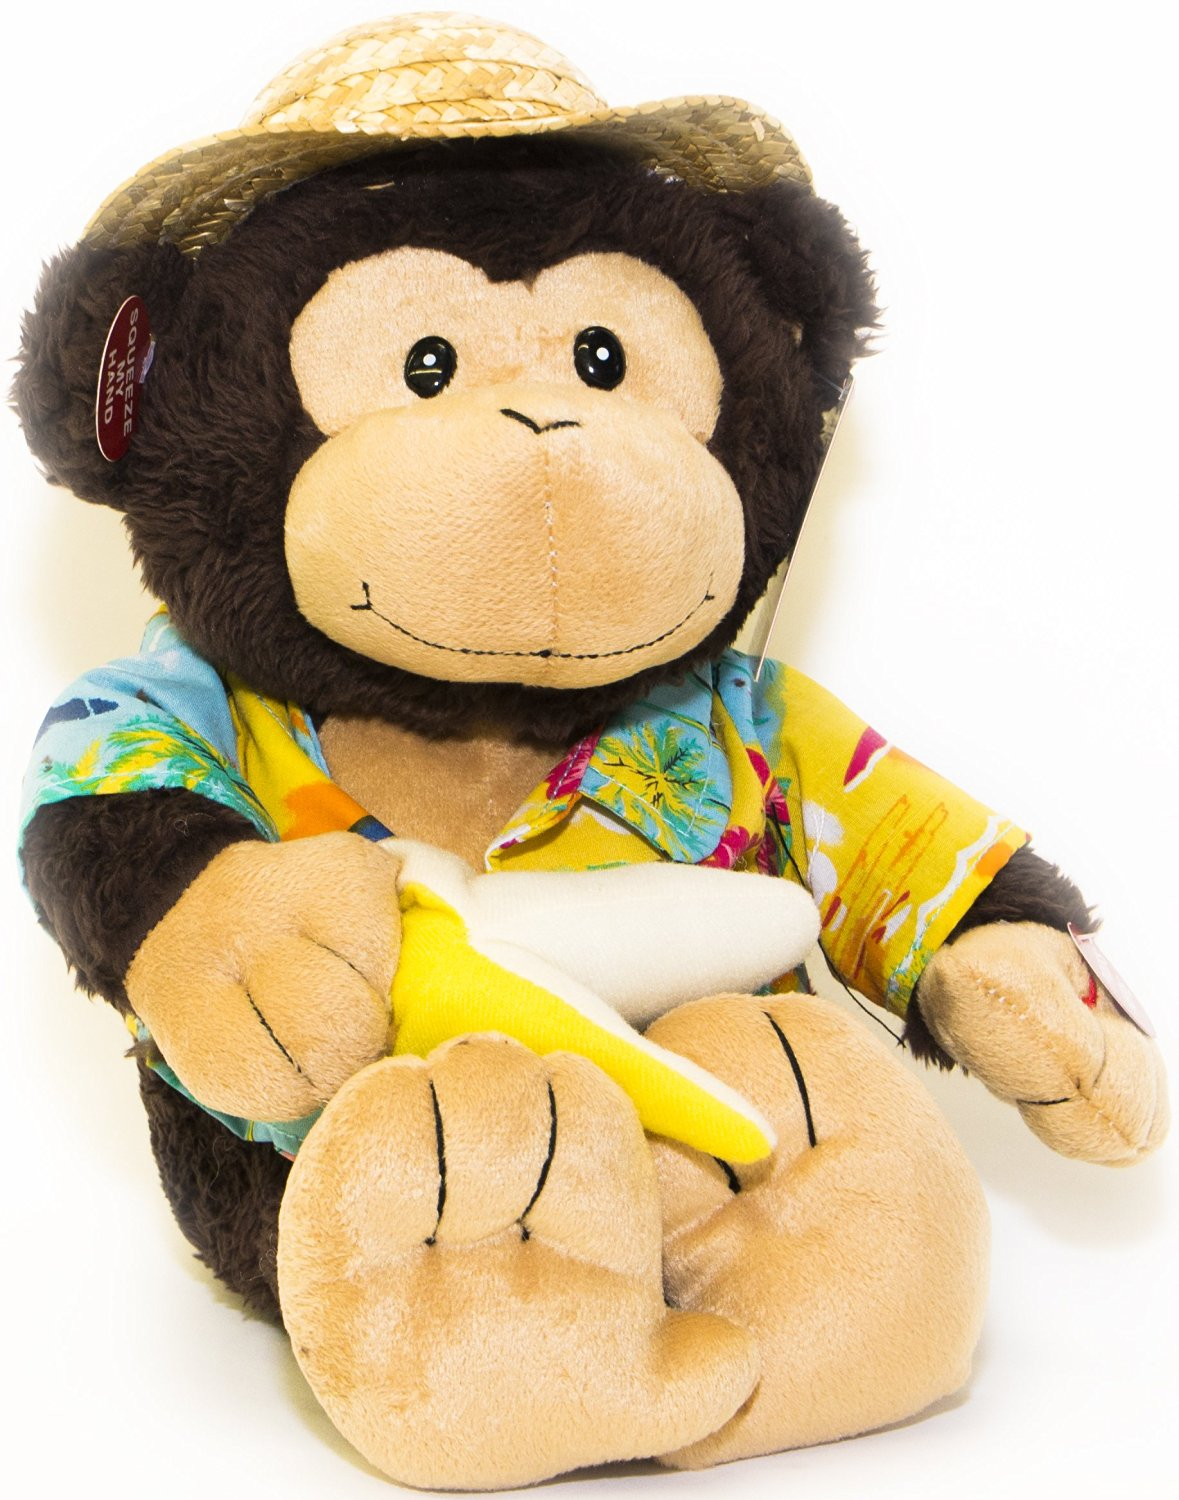 Cuddle Barn New Collection Animated Plush Singing and Dancing Monkey- Banana Boat Bruno